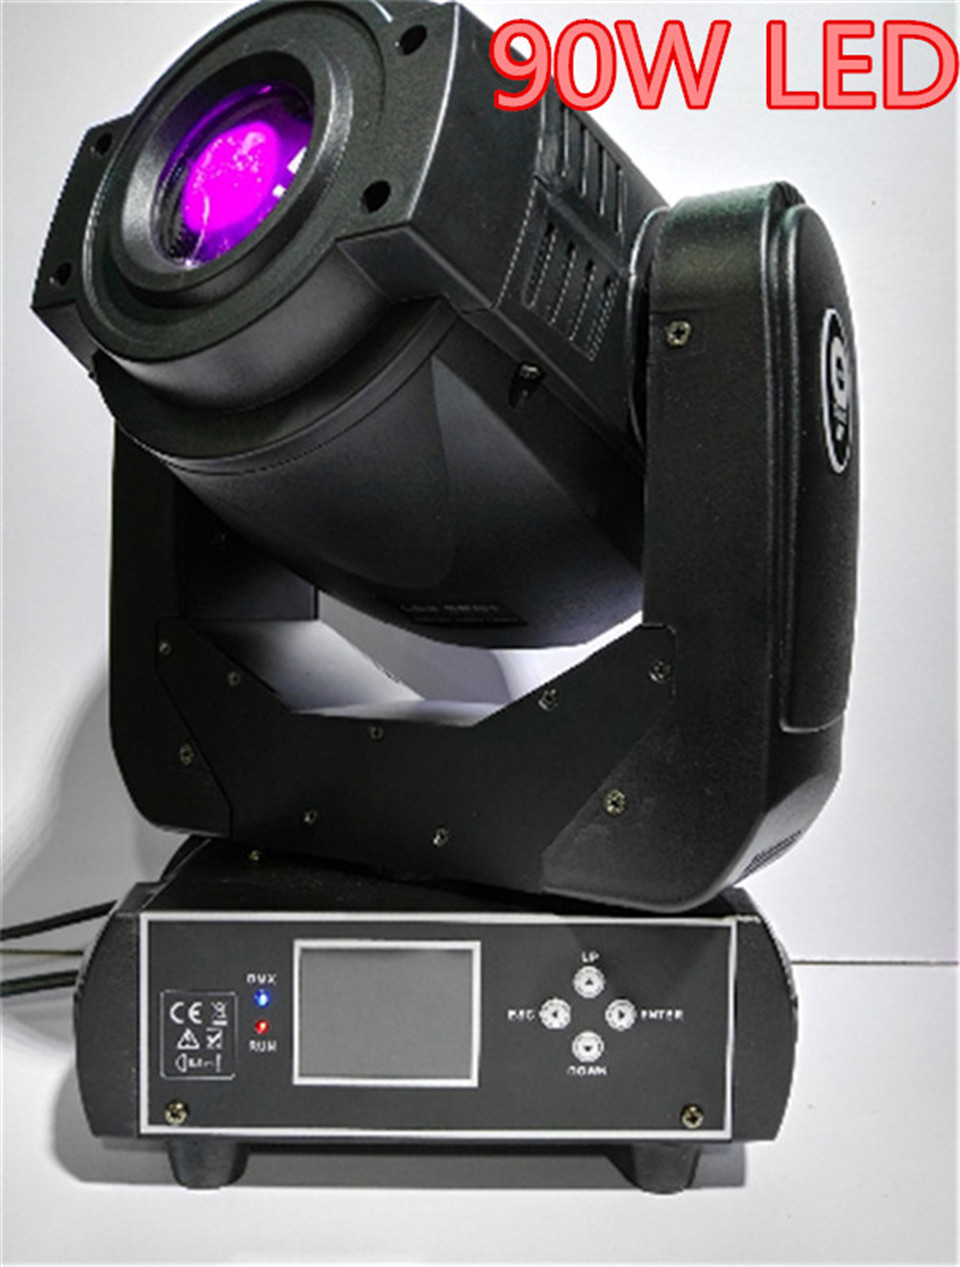 2X 90W LED Moving Head Spot Stage Lighting 6 16 DMX Channel Hi Quality Hot